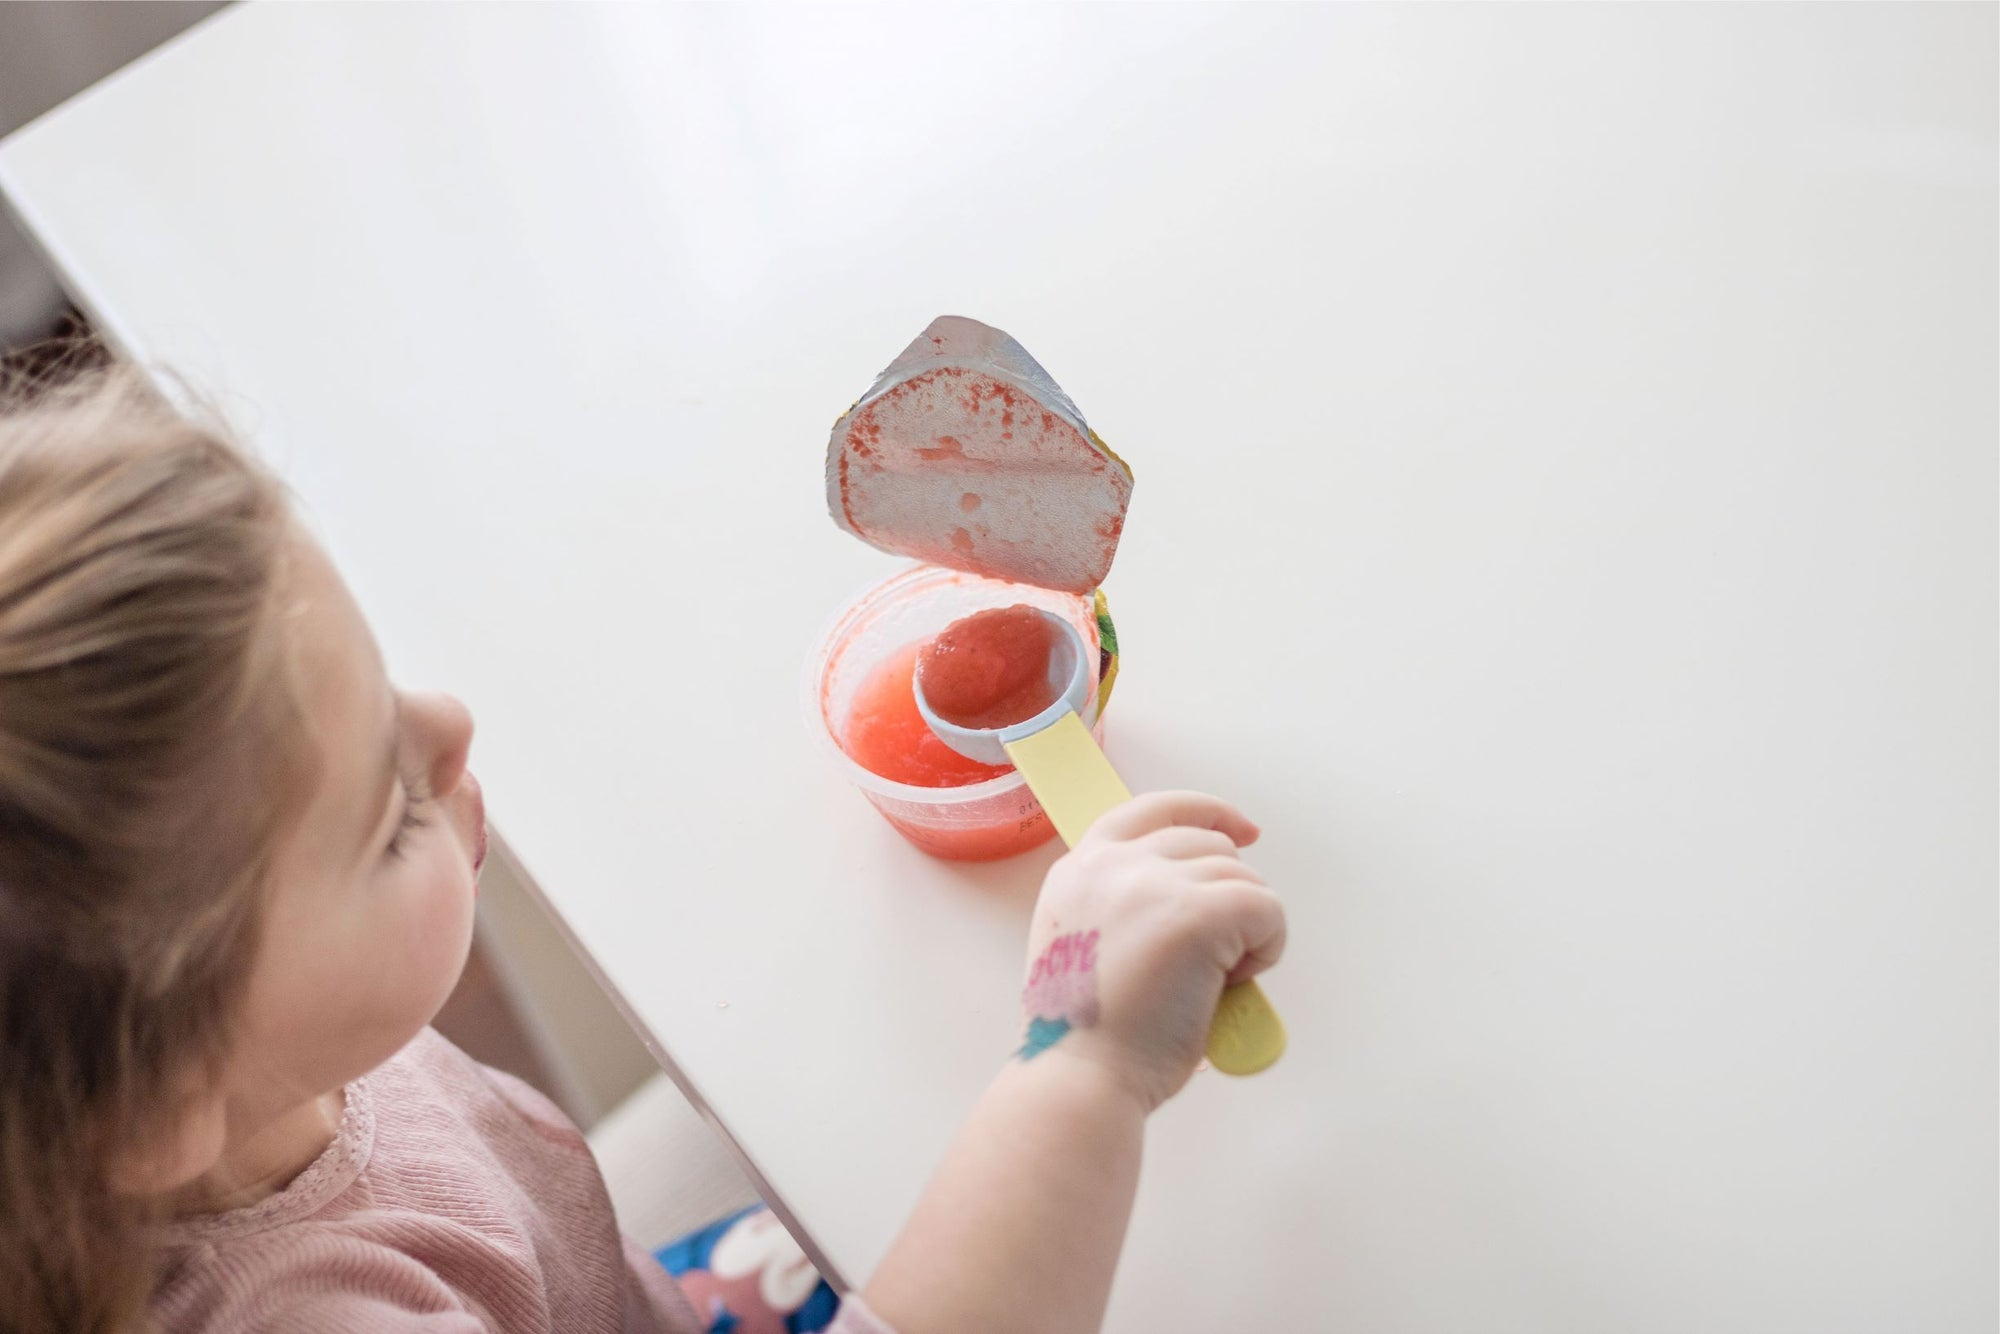 The SuperSpoon Toddler & Child Self-Feeding Spoon